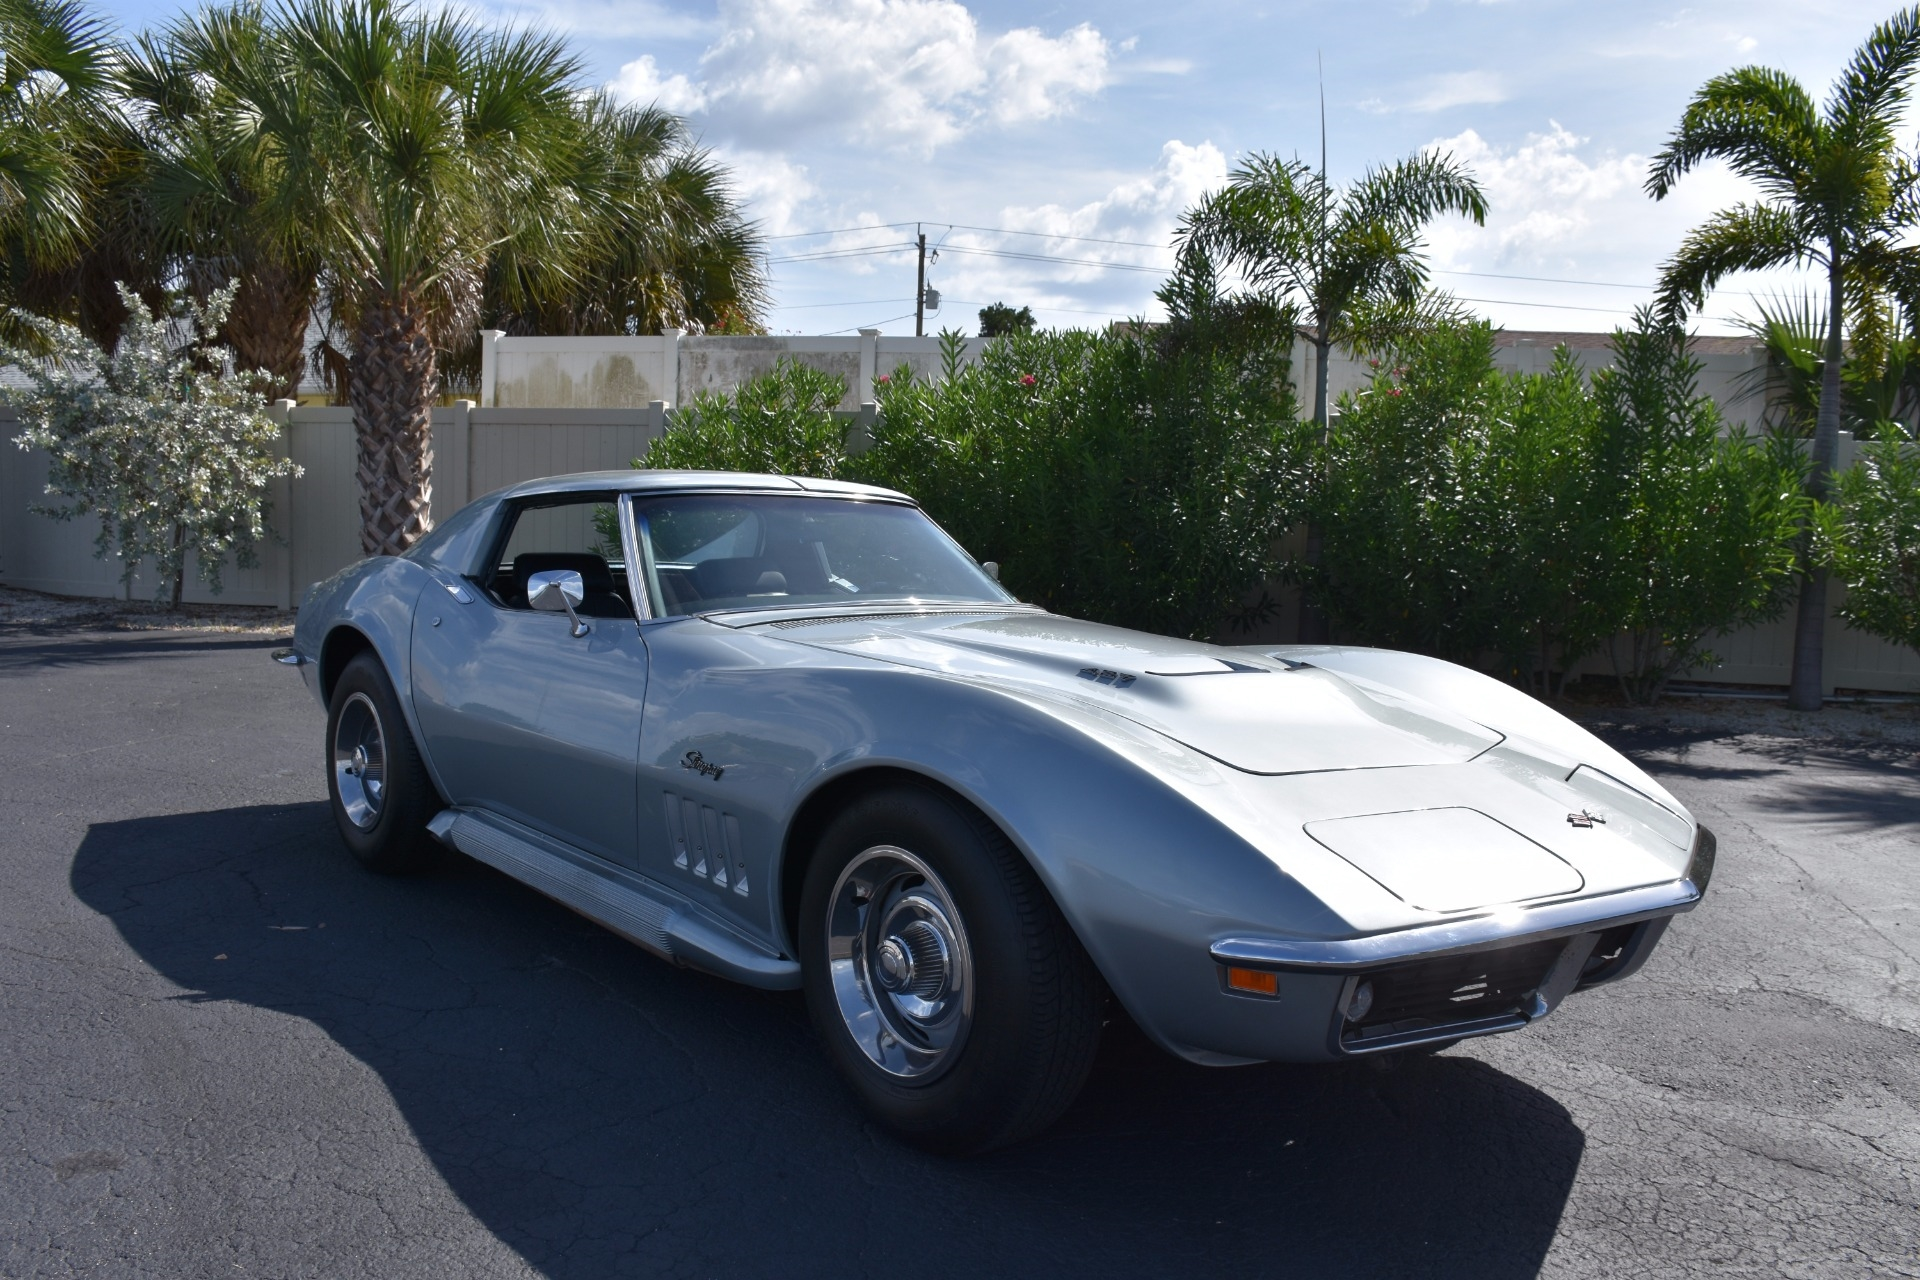 1969 Chevrolet Corvette Coupe 4-Speed Sidepipes